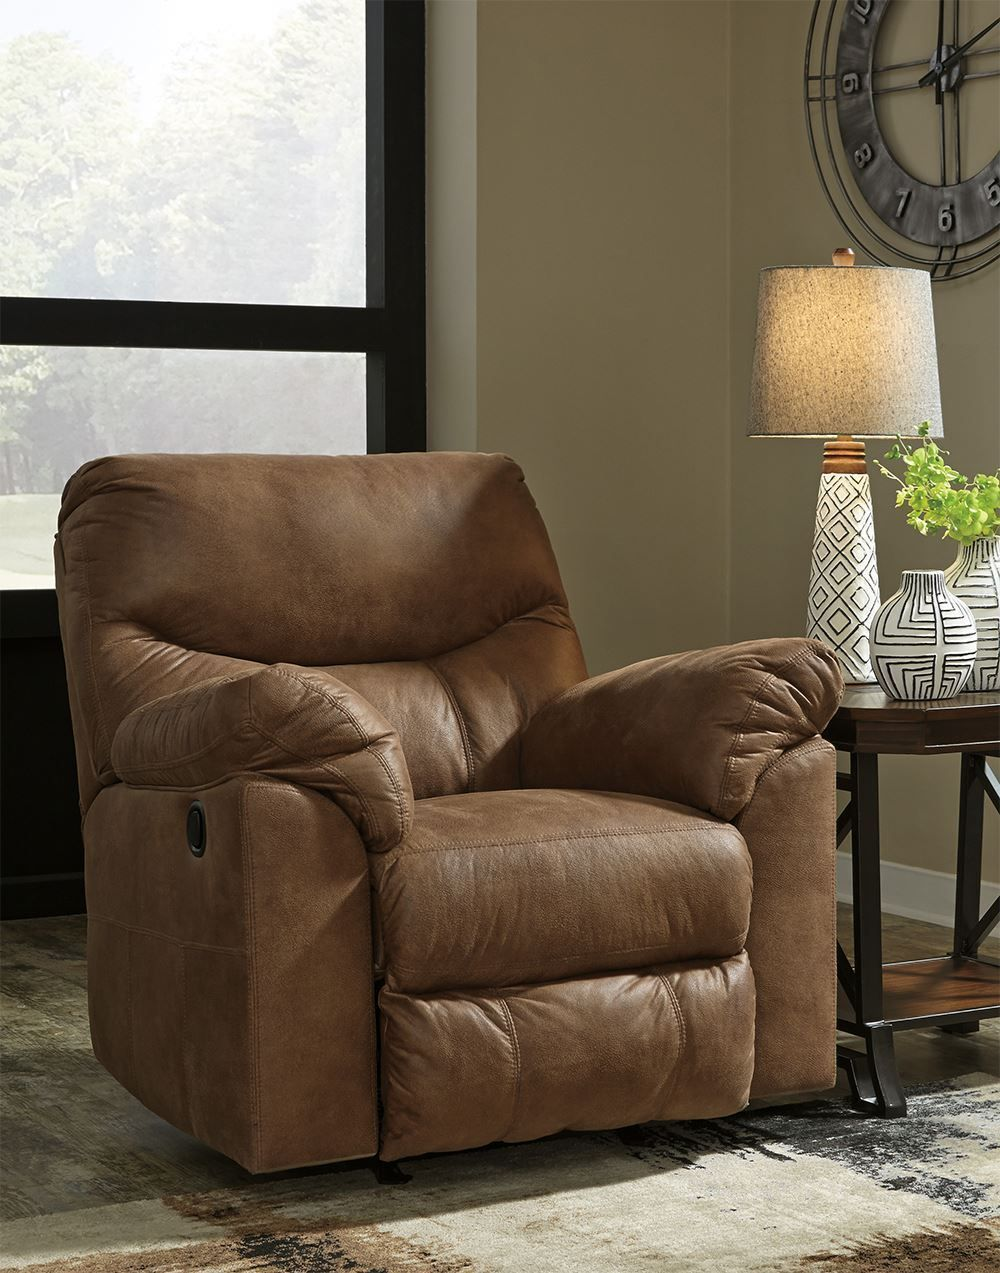 Picture of Boxberg Bark Rocker Recliner